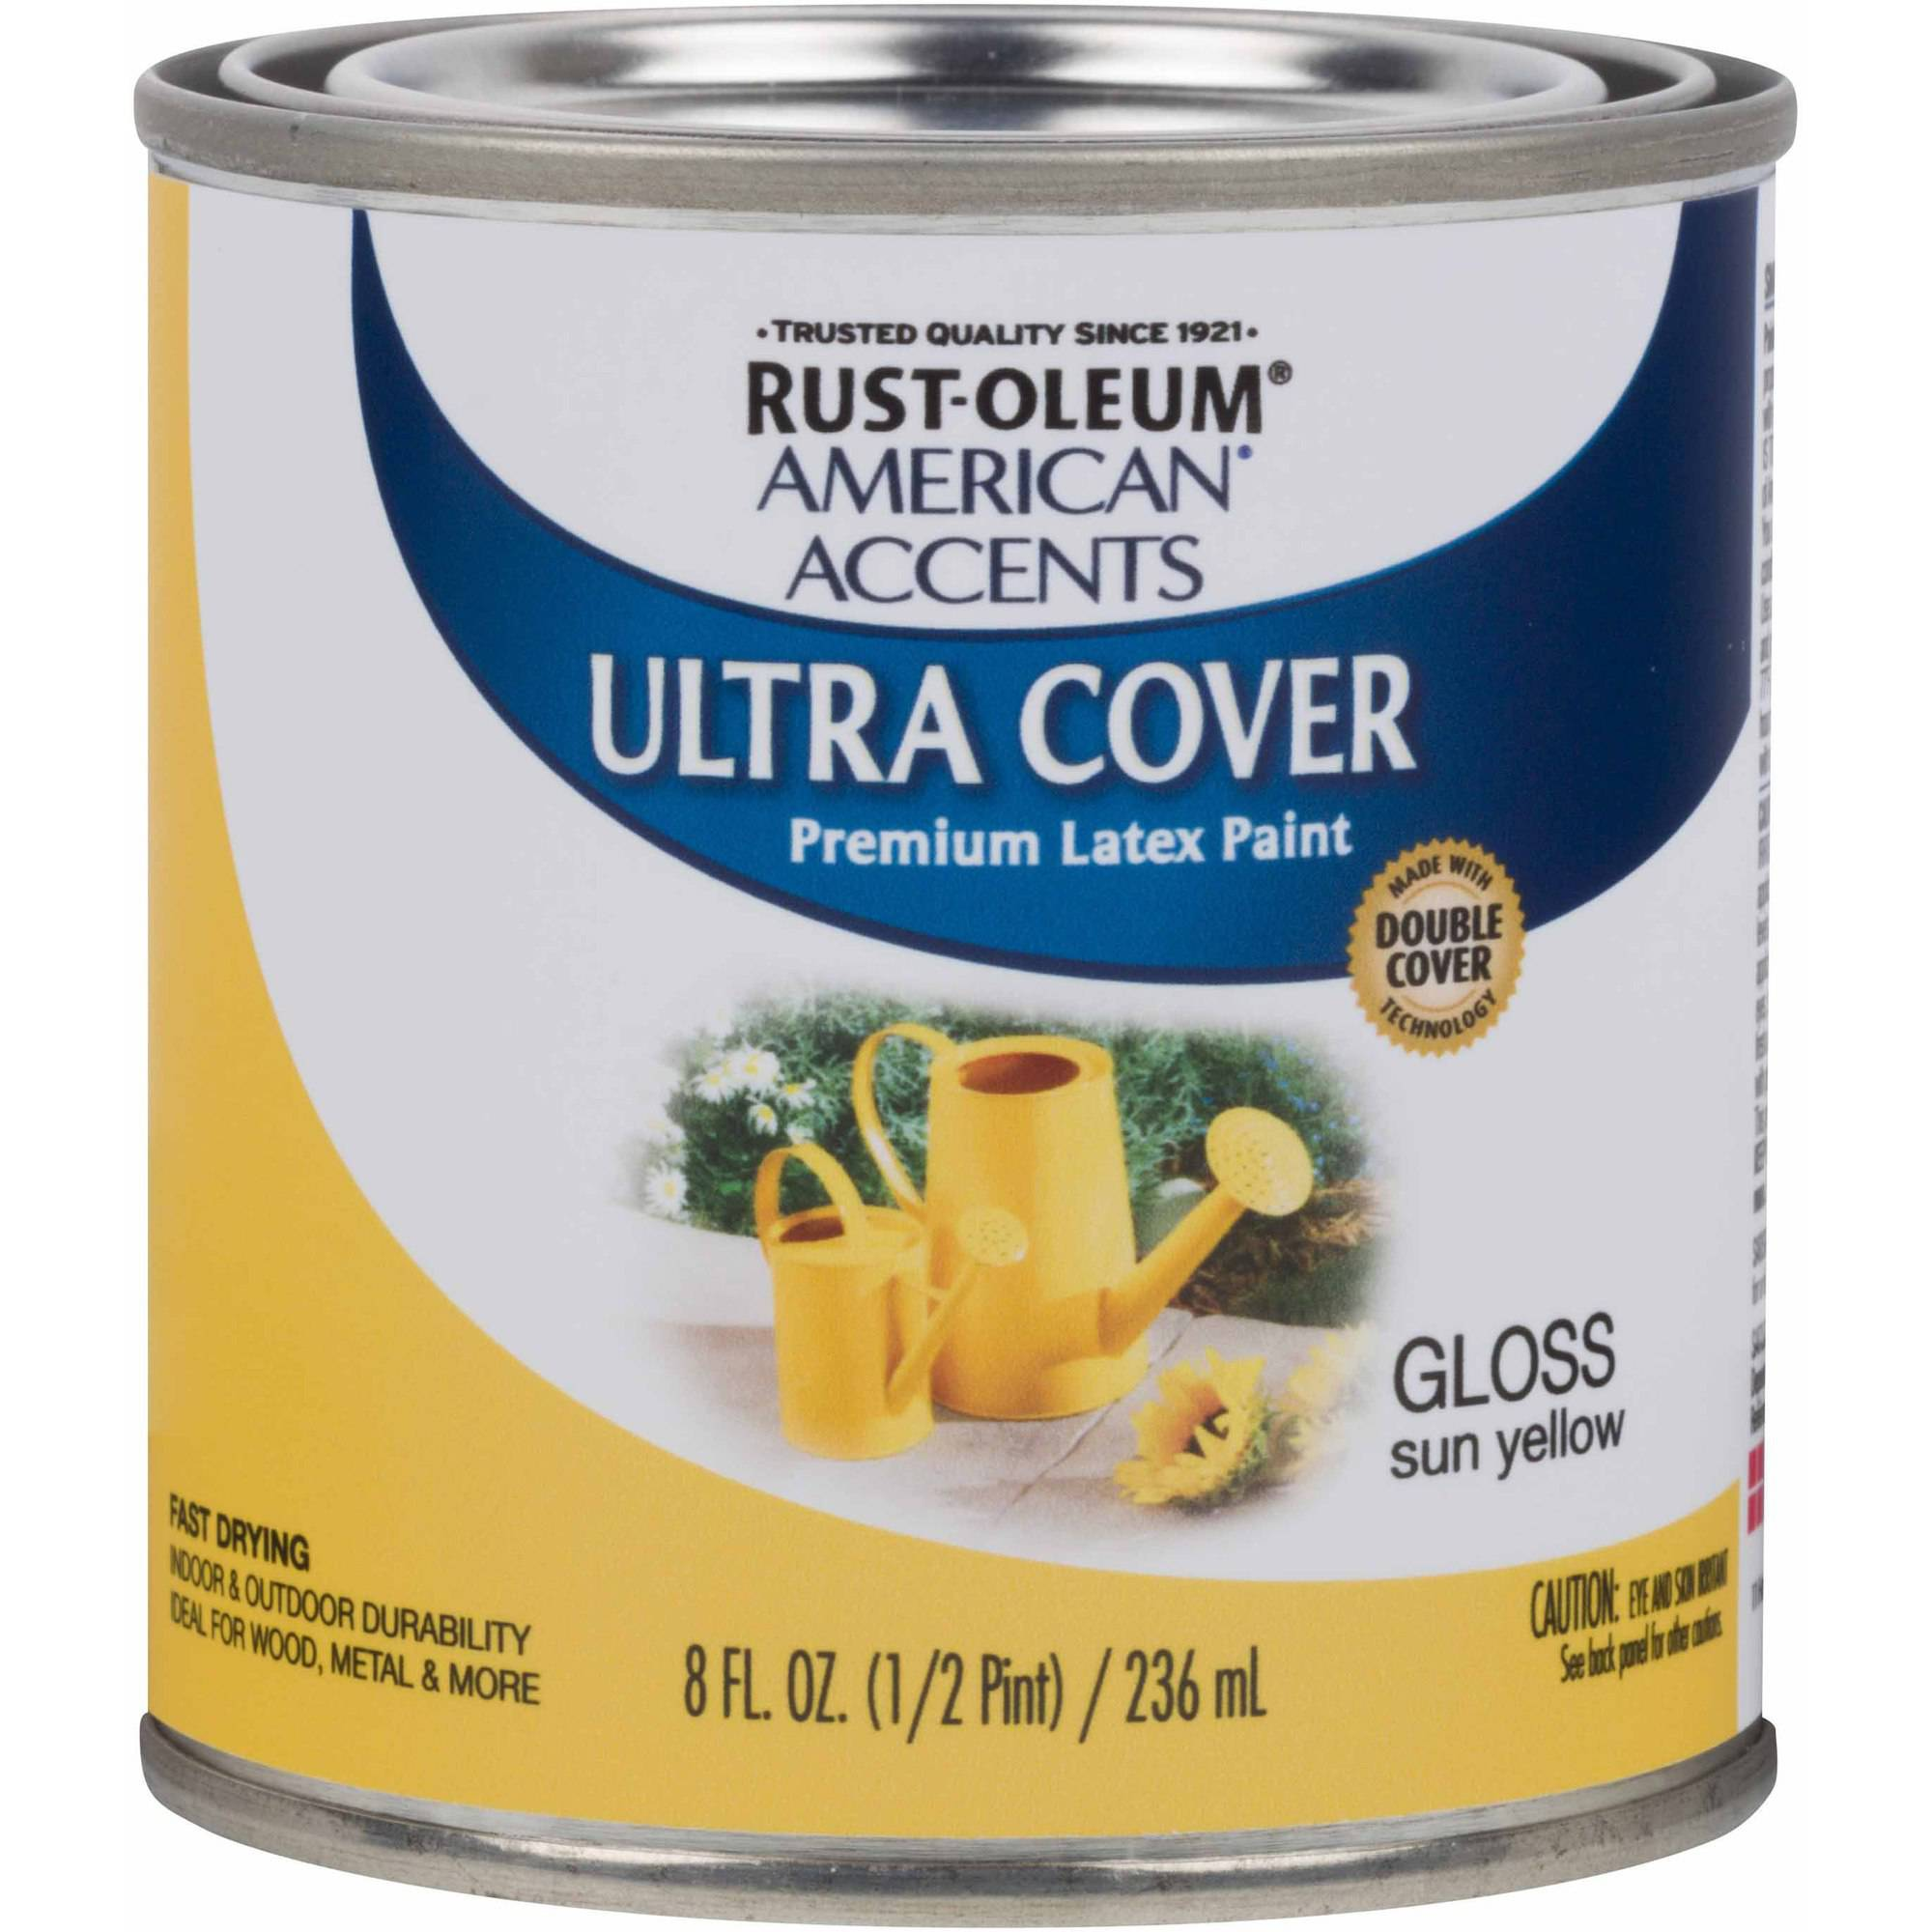 Rust-Oleum American Accents Ultra Cover Gloss Sun Yellow General Purpose Paint, Half-Pint